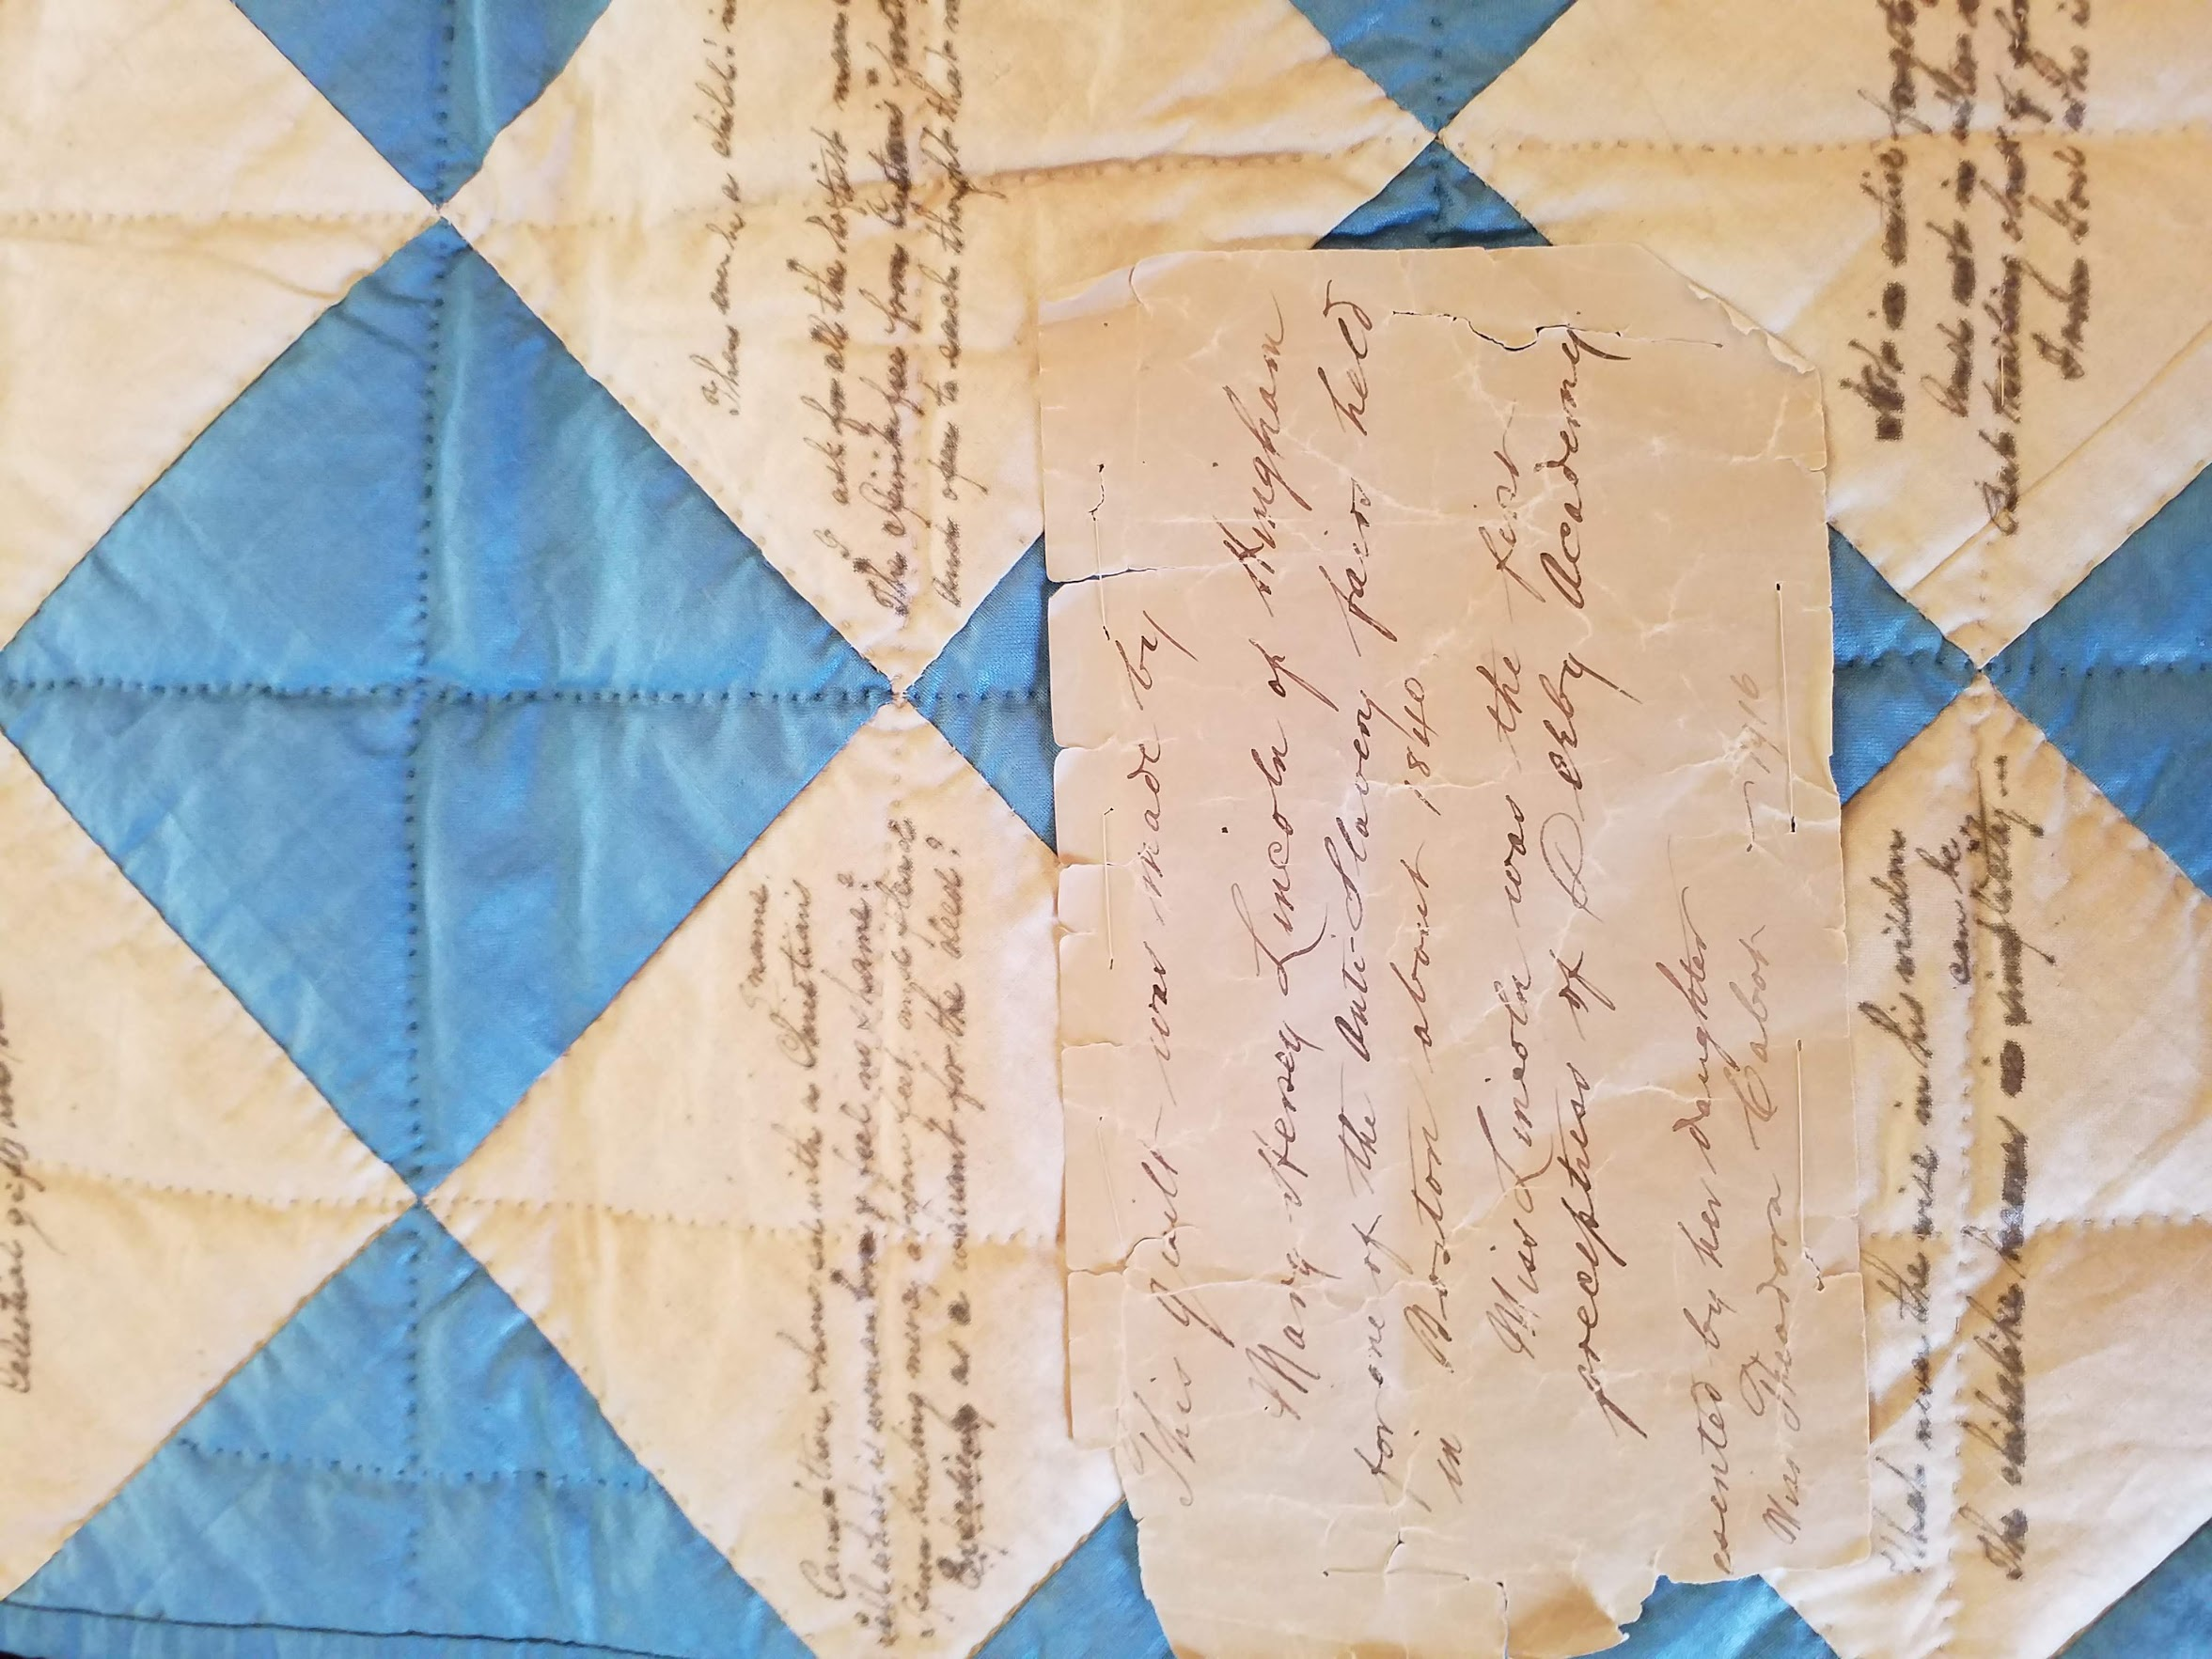 Label recording the quilt history and donation to the Hingham Historical Society